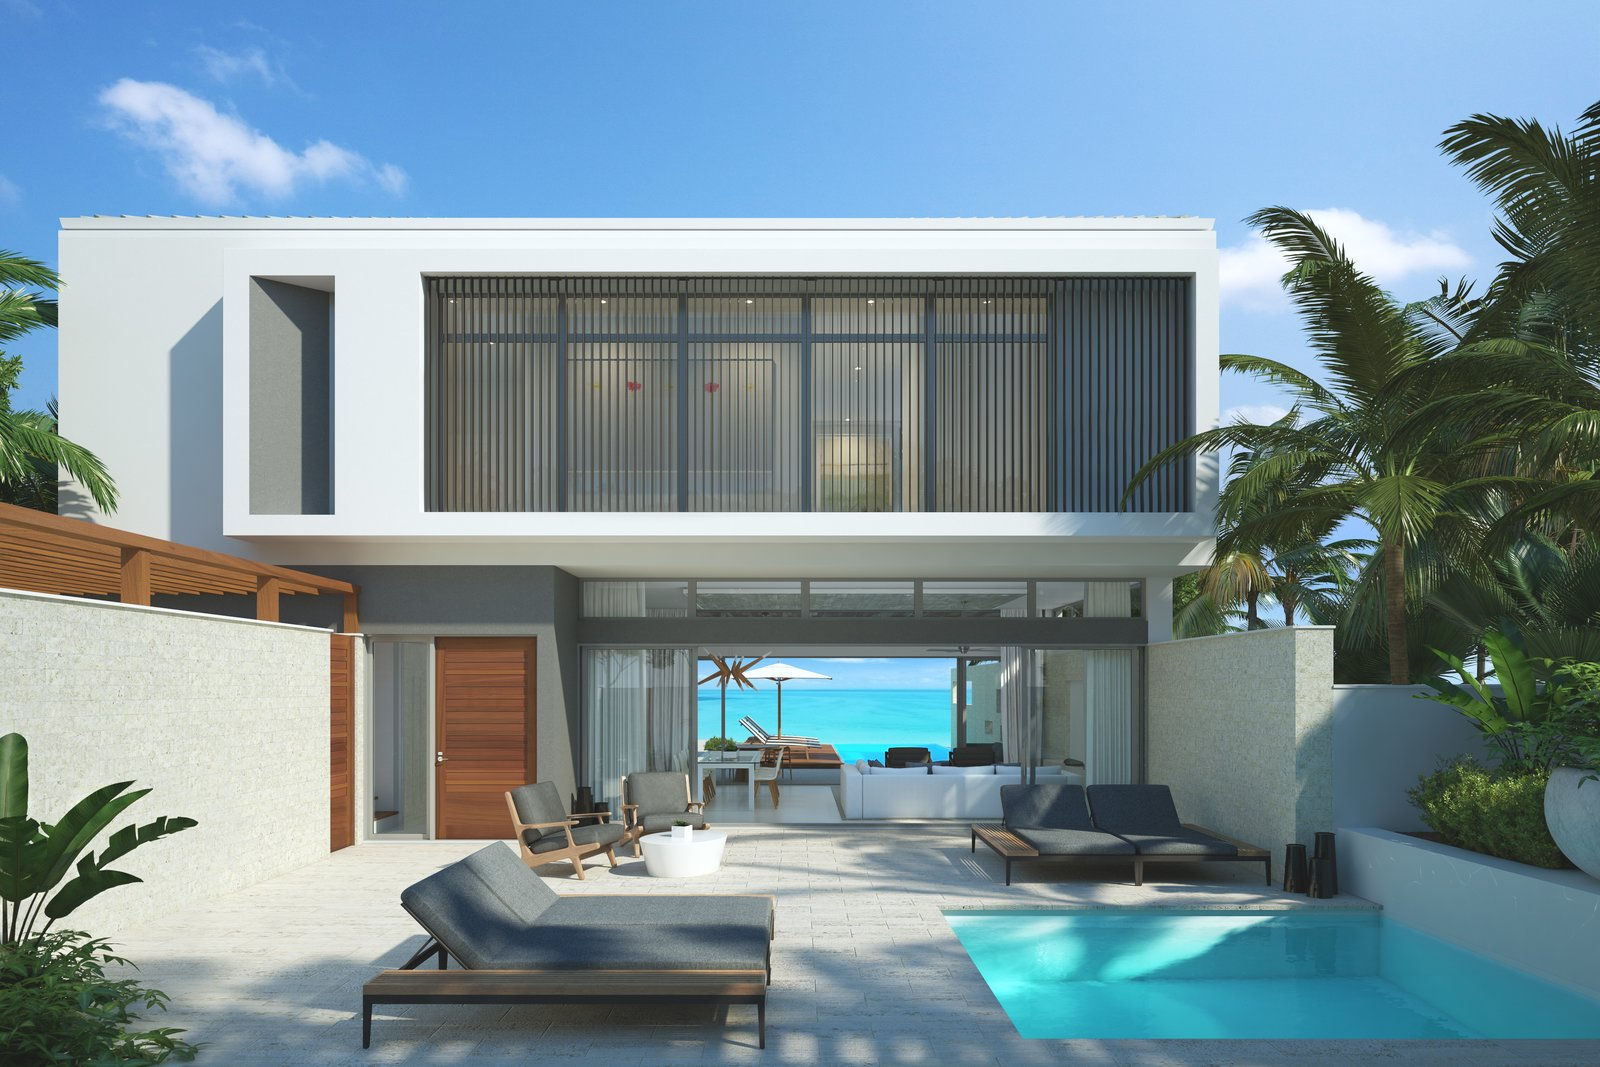 Coast Architects and D'Amico Design Associates (DADA) have taken the crisp lines and contemporary aesthetic found at Gansevoort Turks + Caicos and reimagined it into five recently launched four- and five-bedroom oceanfront villas. Located on the spectacular southern shore of Providenciales in an area known as Turtle Tail, owners will enjoy the privacy of a luxury oceanfront villa, with the amenities of a modern beachside resort.  Photo 2 of 13 in 12 Perfect Plunge Pools For Your Small Outdoor Space from Gansevoort Turks + Caicos launches luxury oceanfront villas